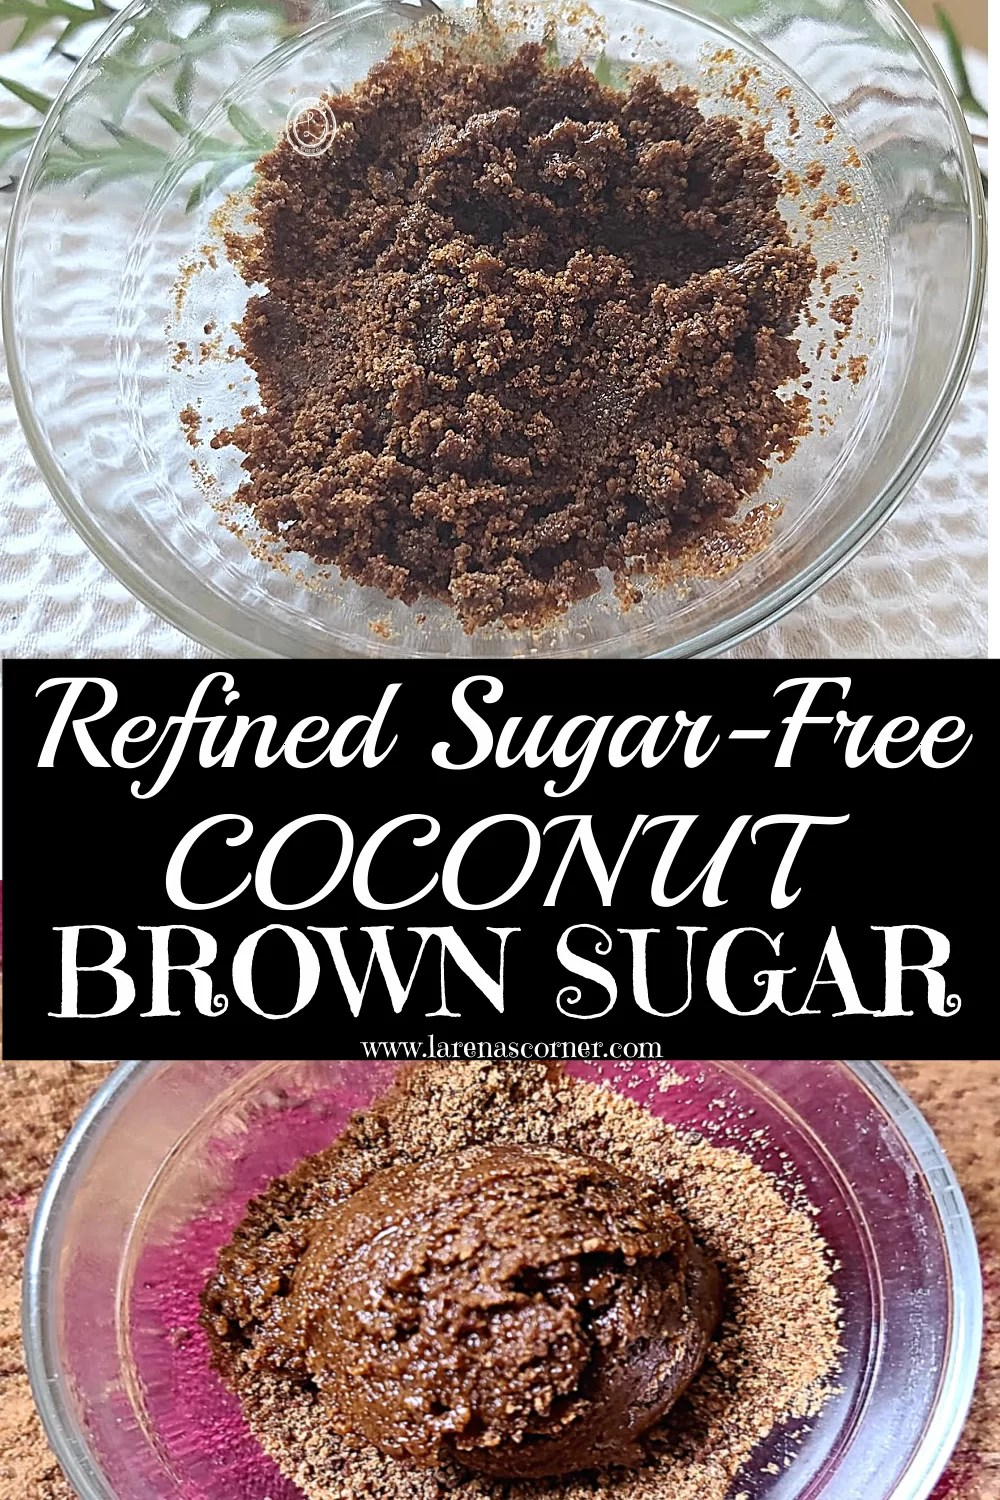 Two Pictures of Coconut Brown Sugar in a Bowl with two different backgrounds